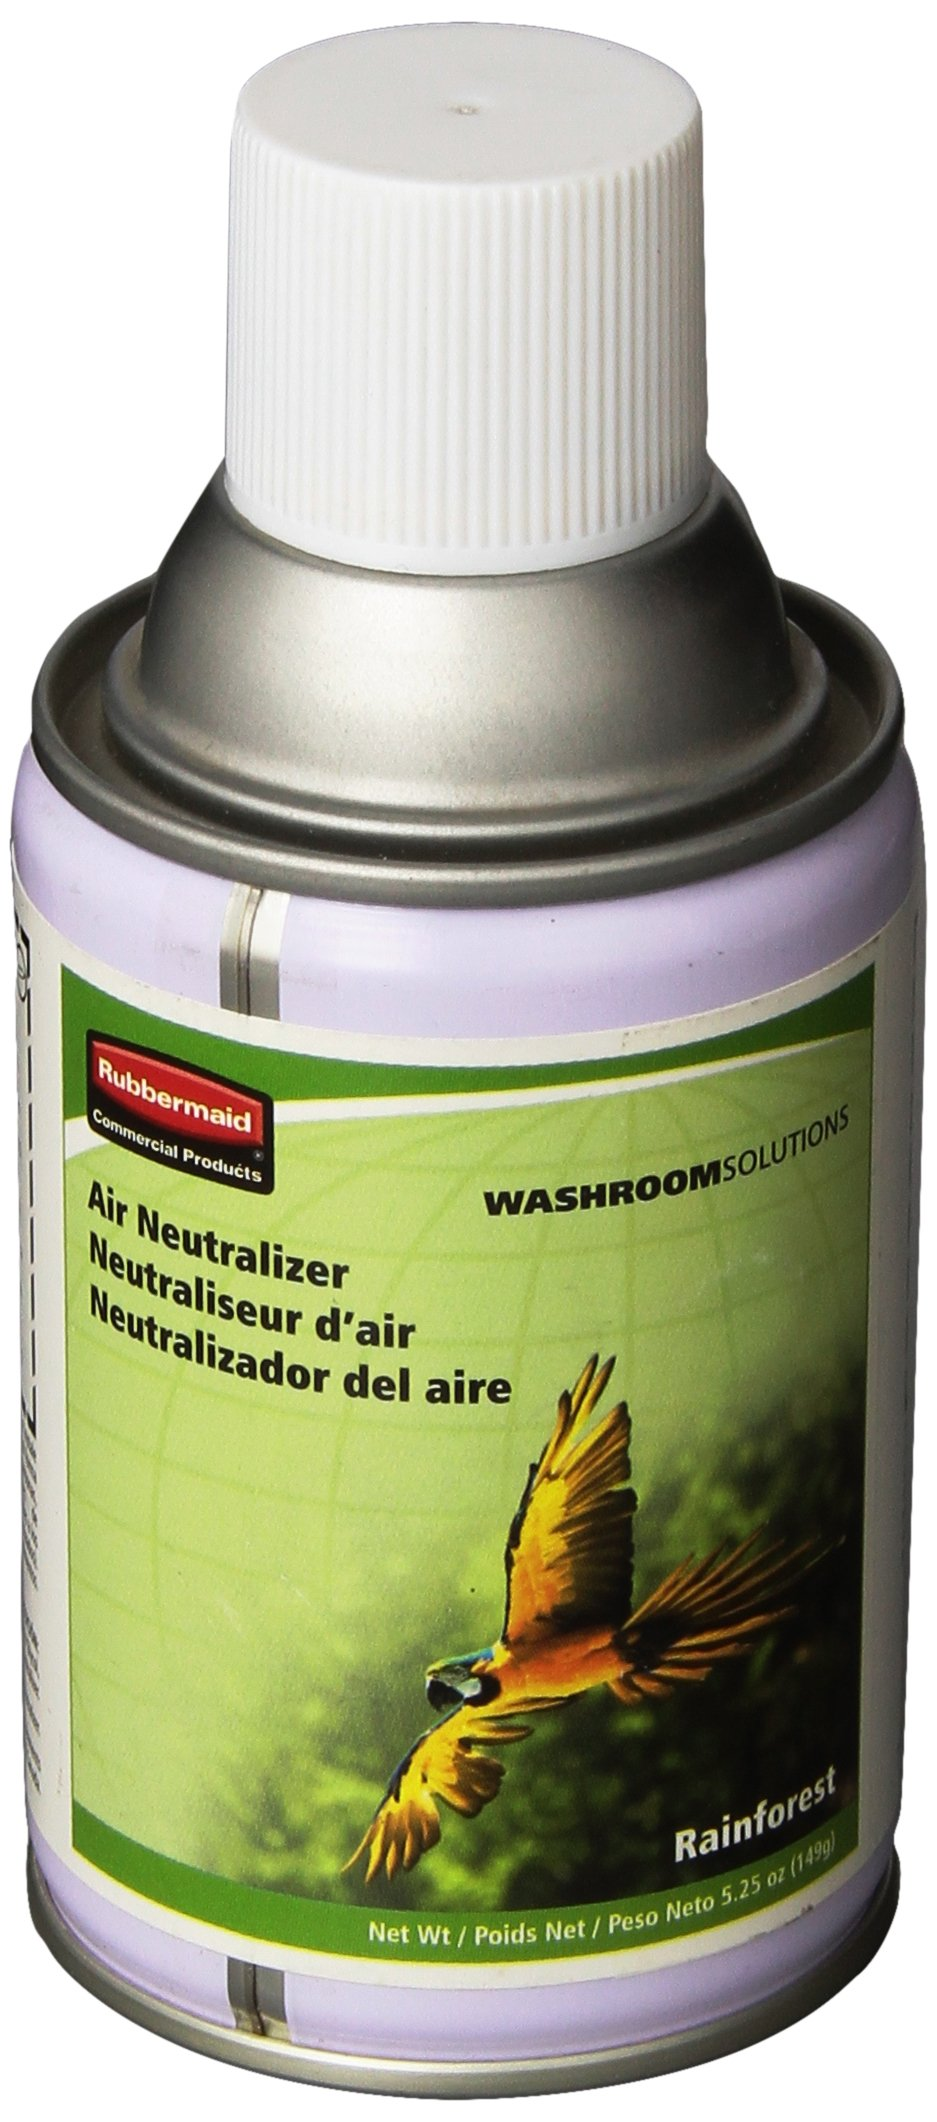 Rubbermaid Commercial FG750302 Standard Aerosol Refill for Microburst Metered Air Care Systems, Rainforest (Global Collection) by Rubbermaid Commercial Products (Image #1)